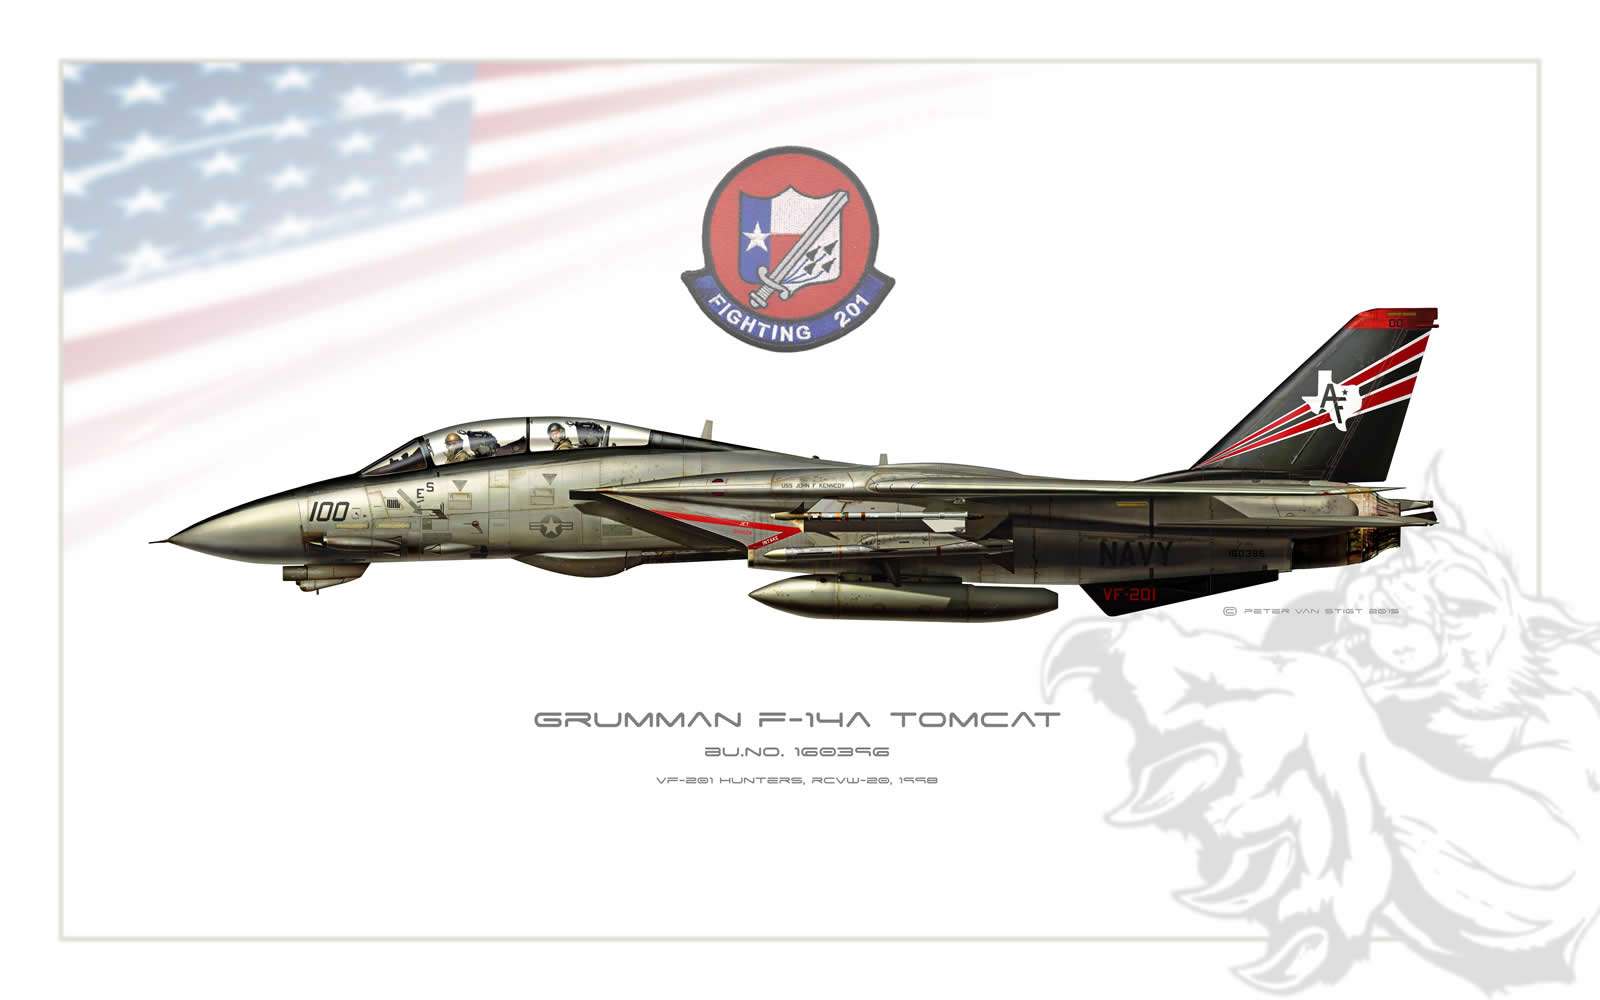 VF-201 Hunters F-14 Tomcat Profile